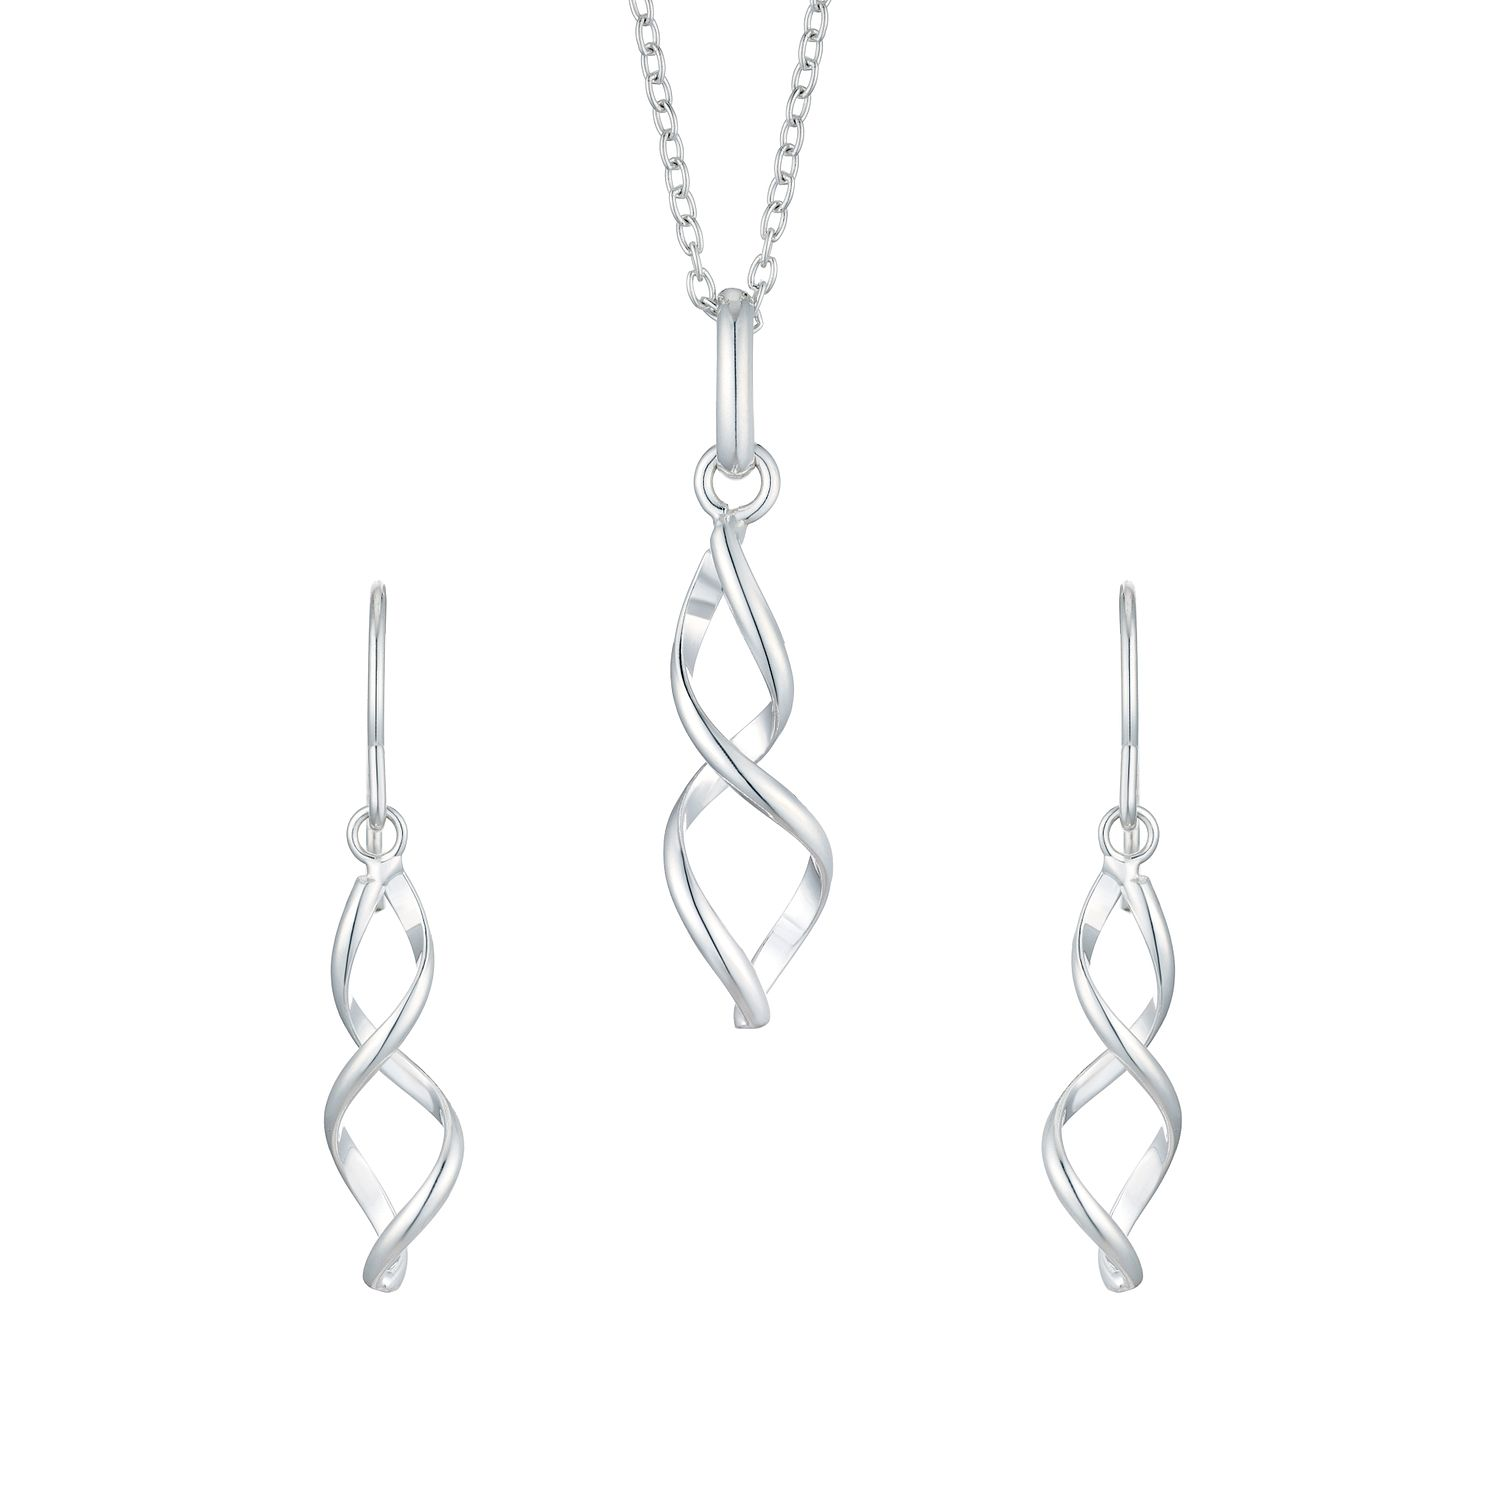 Silver Twist Earrings & Pendant Set - Product number 5427789